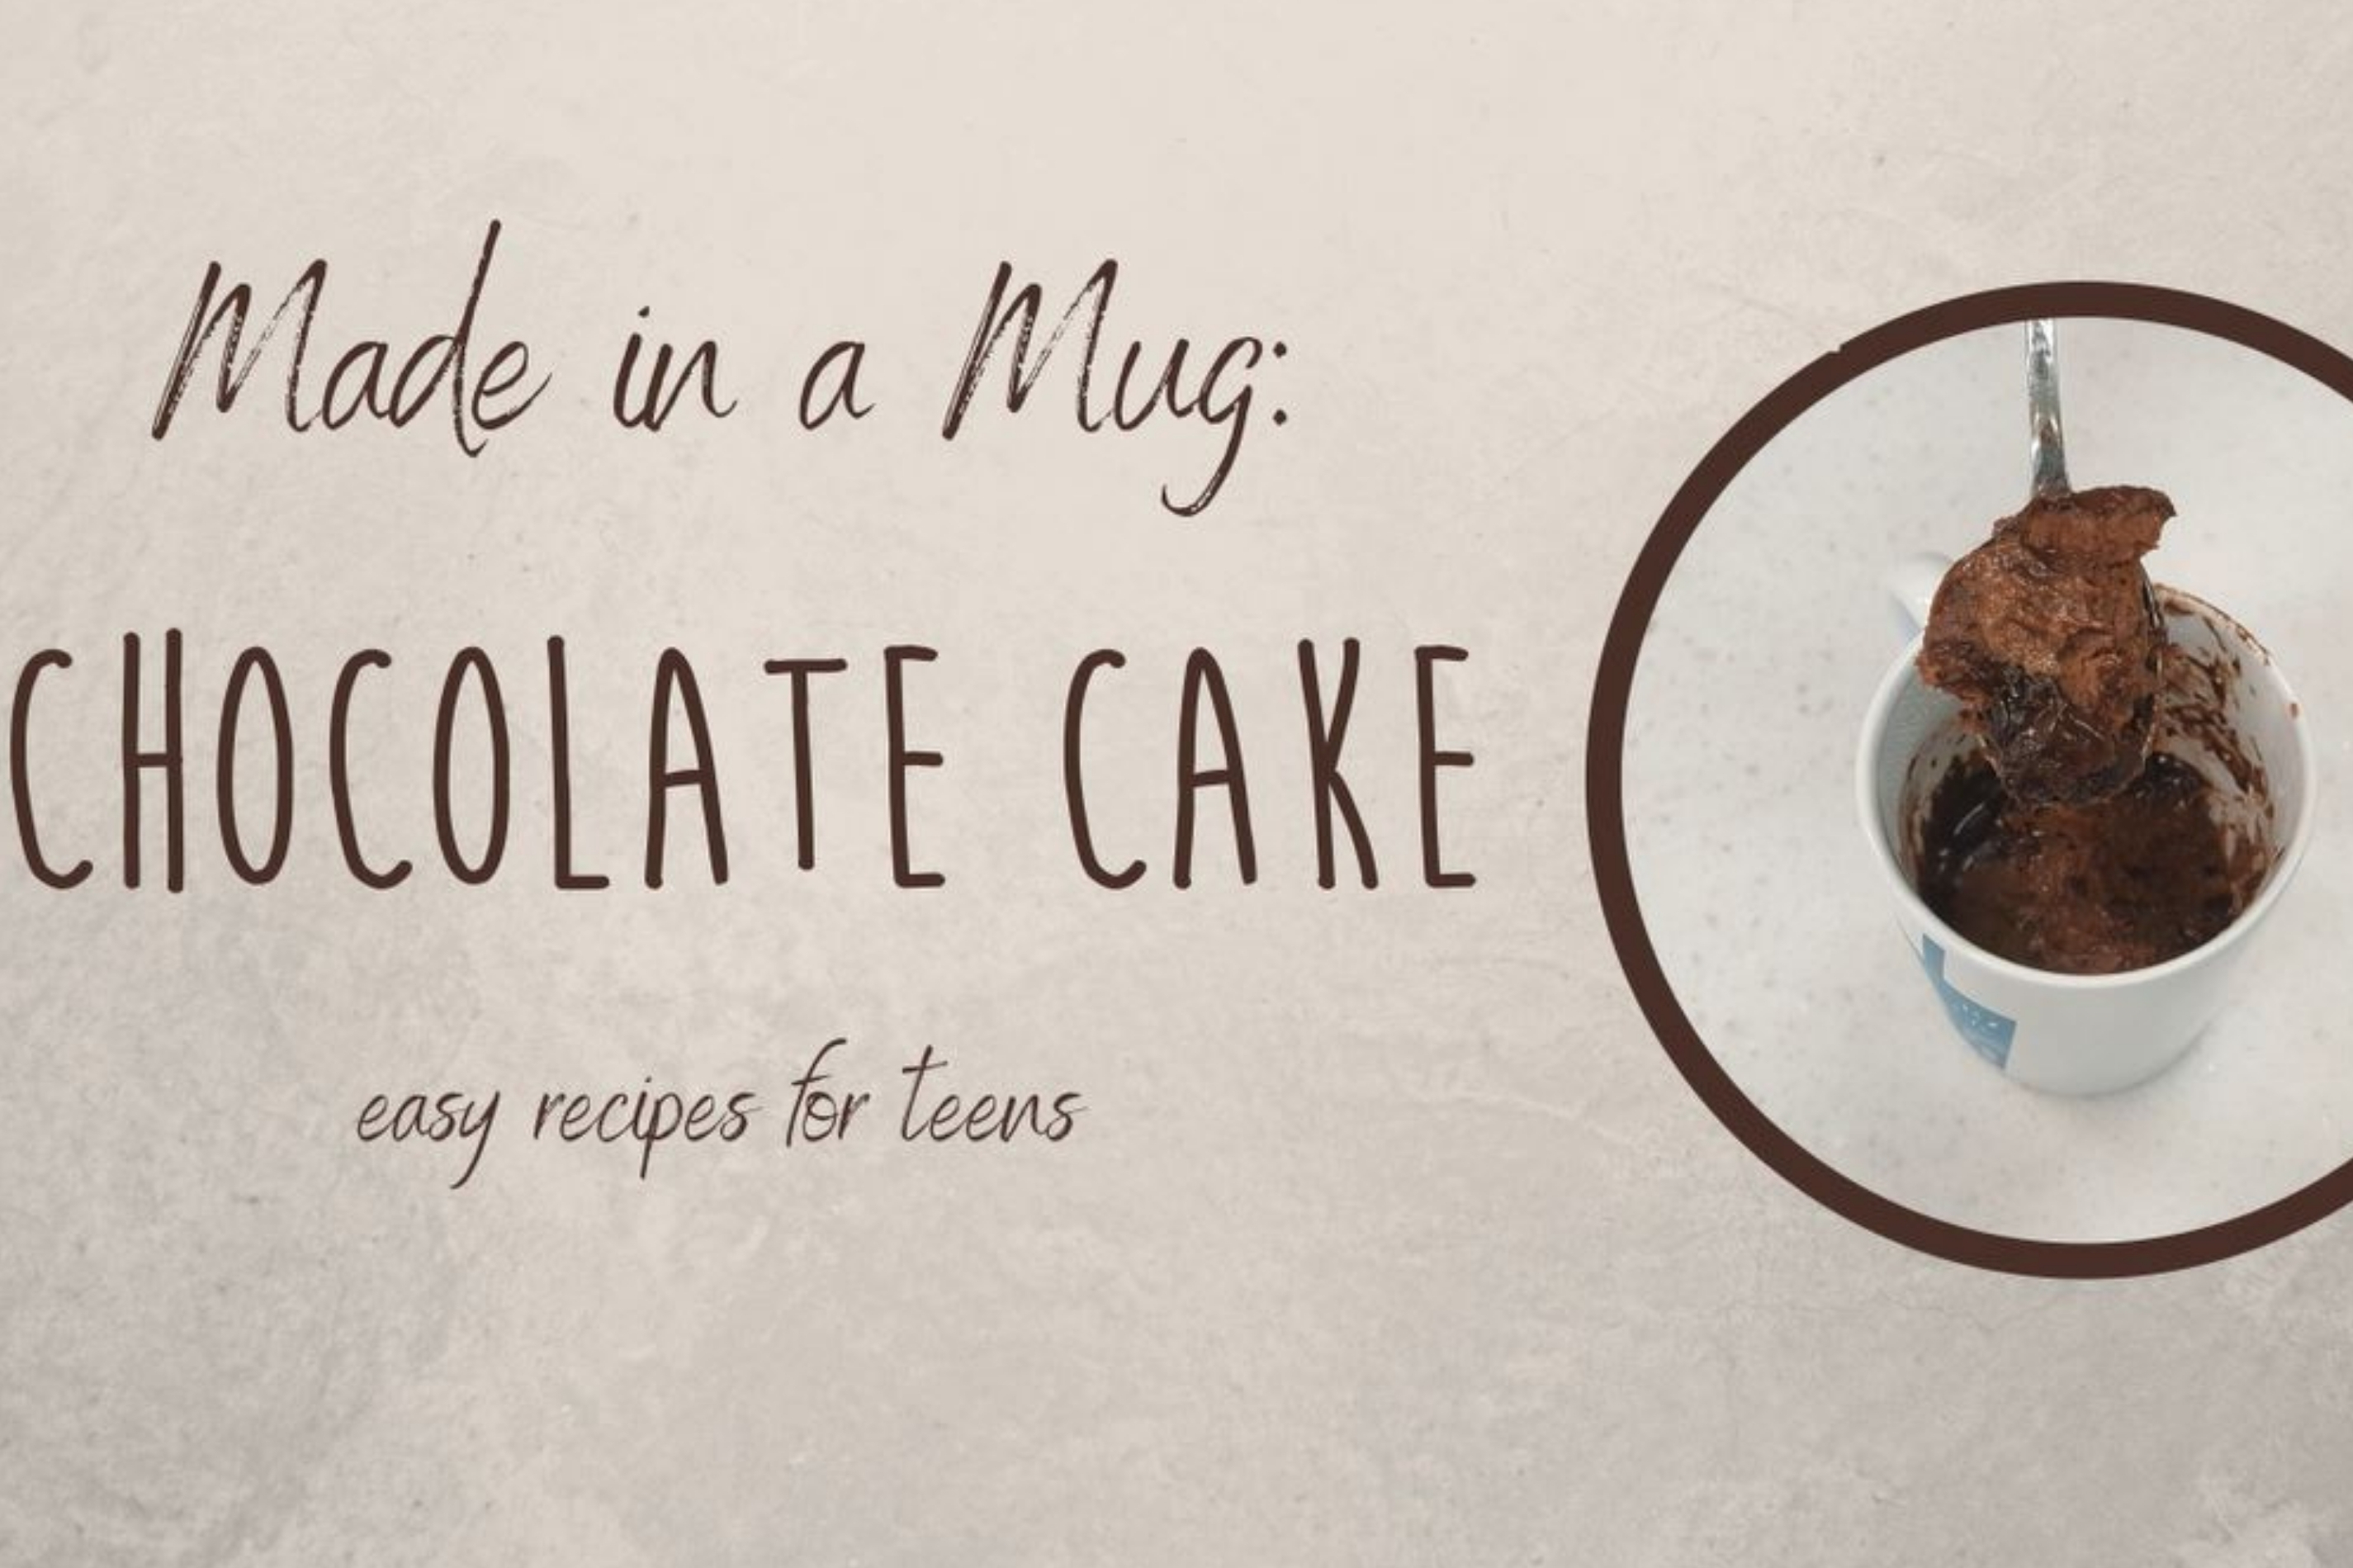 Made in a Mug: Chocolate Cake